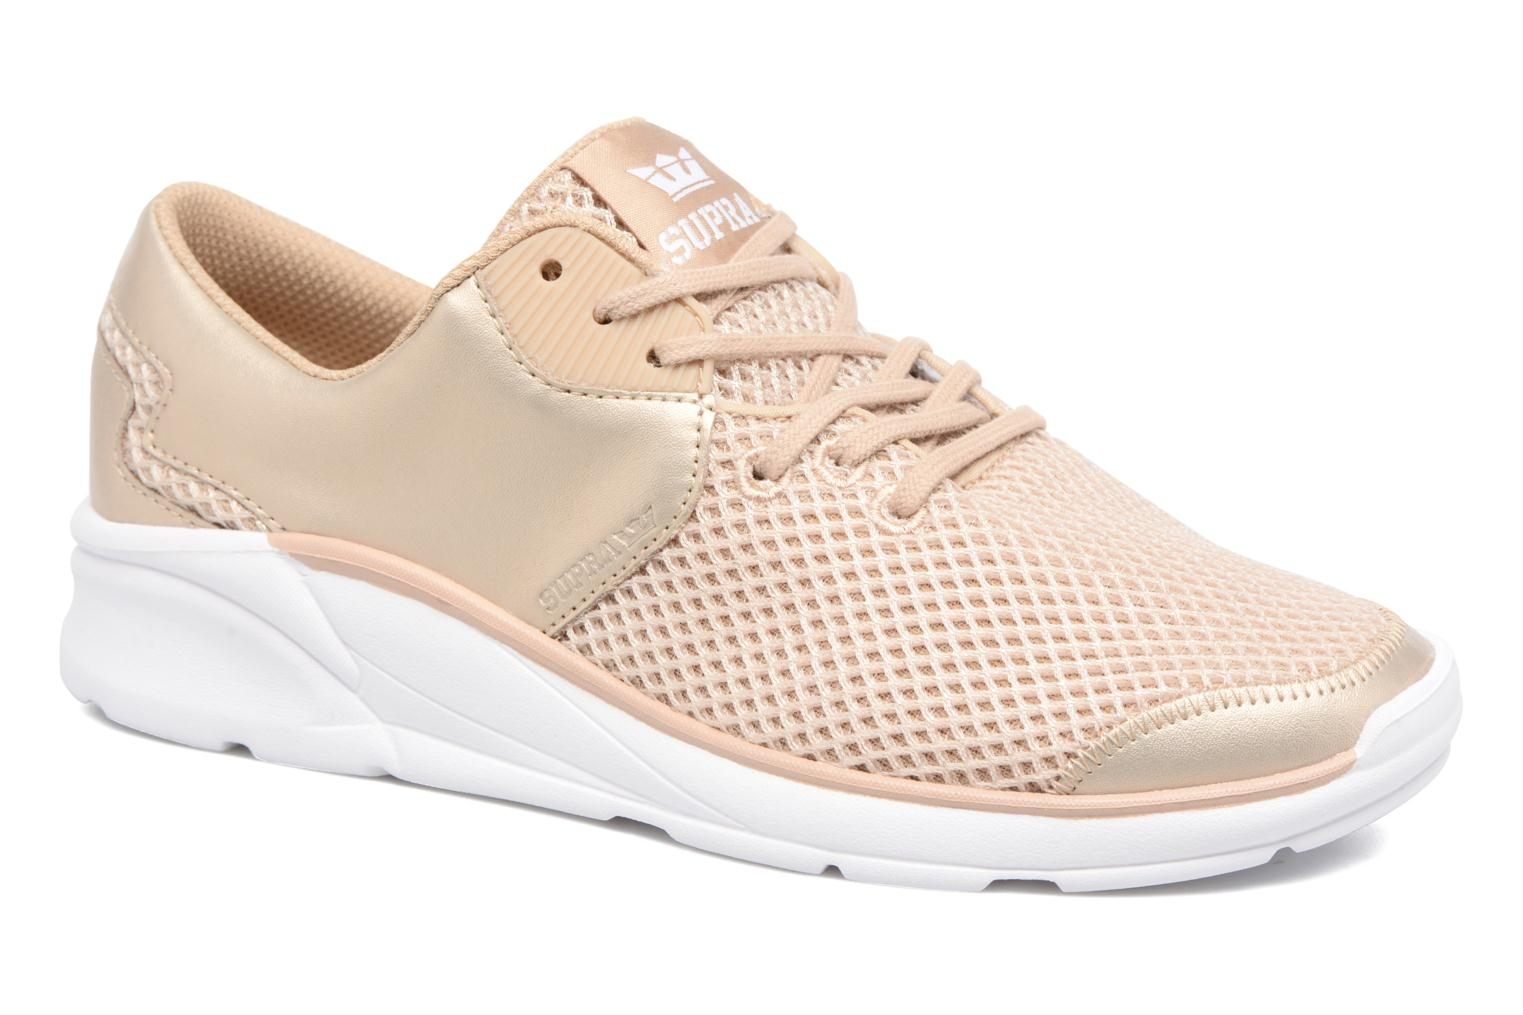 Baskets Supra Women's noize Or et bronze vue détail/paire